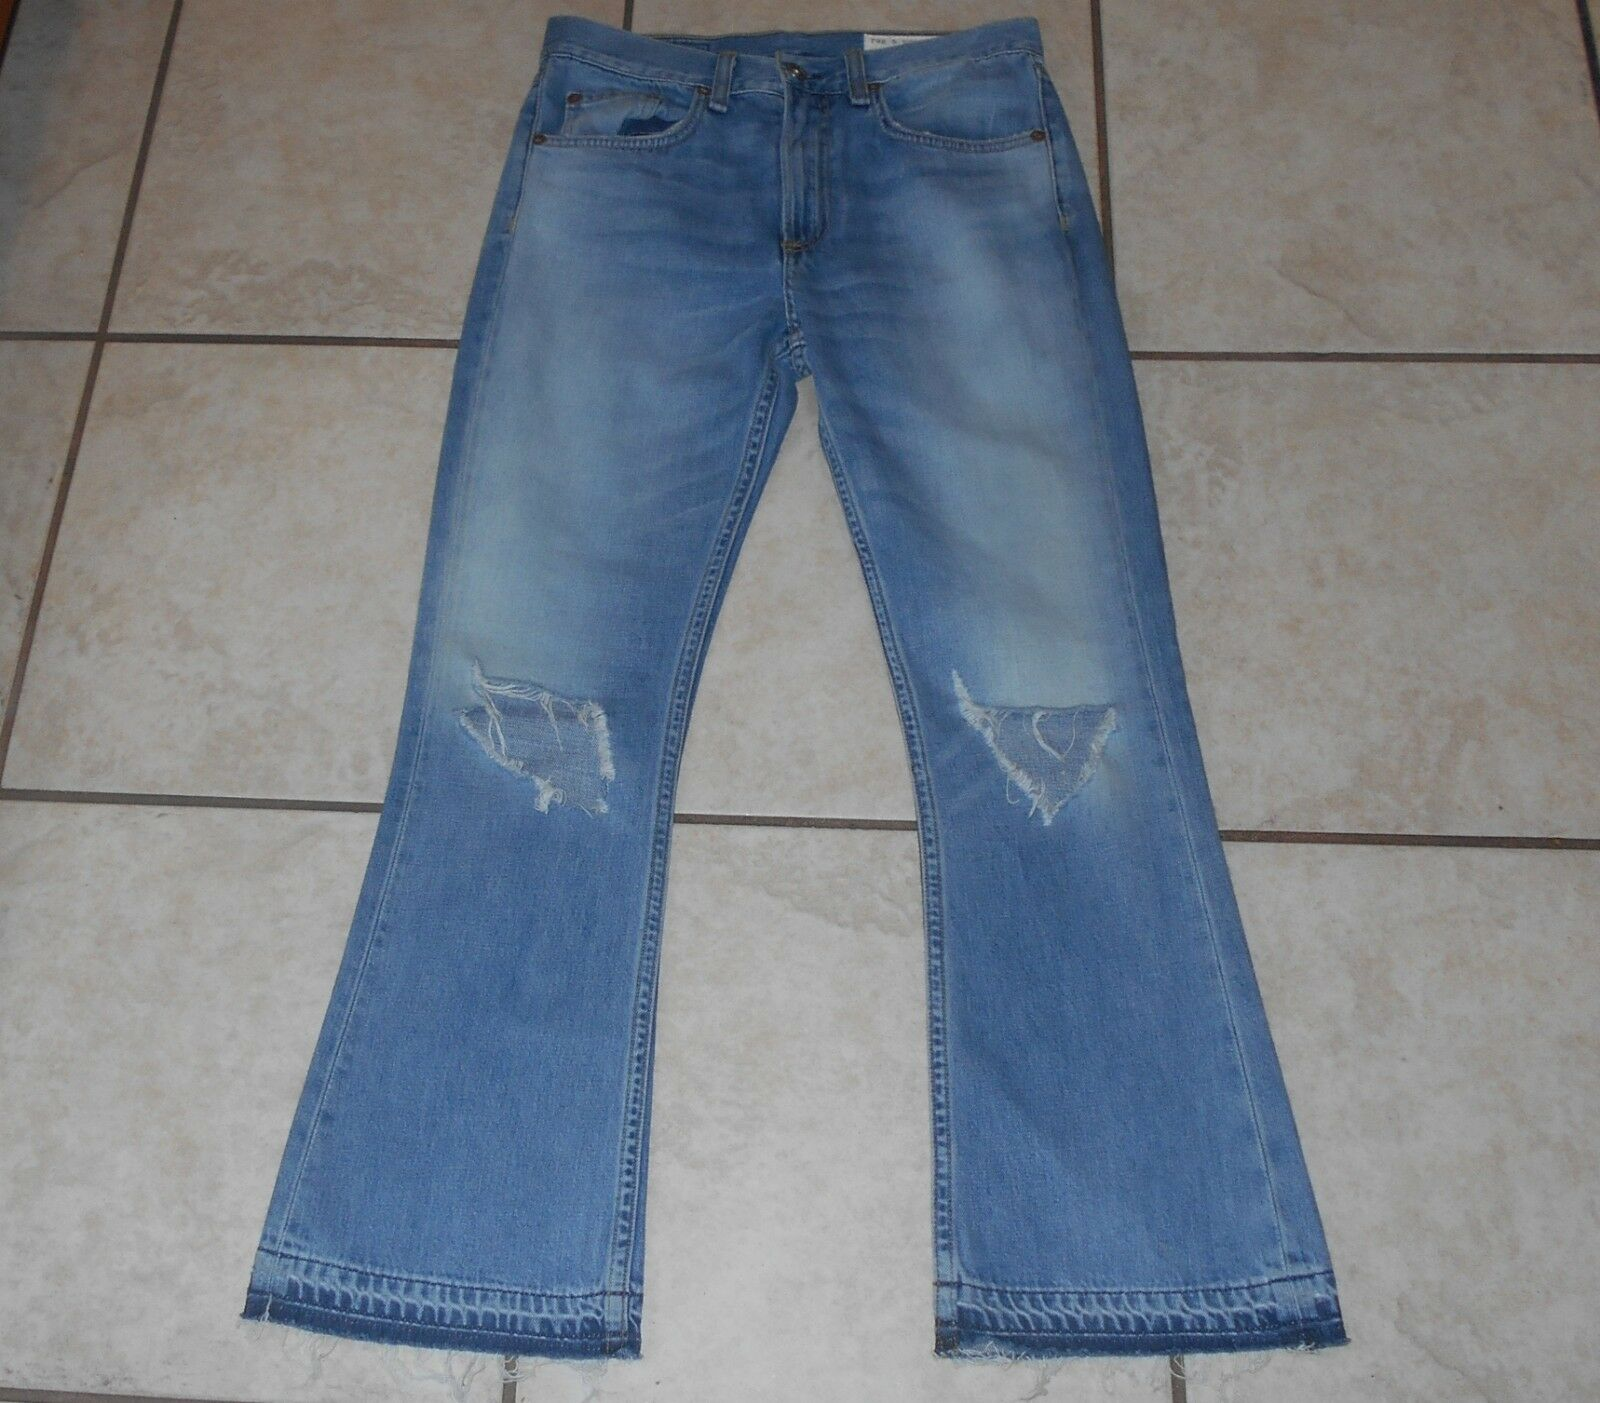 NWOT MISSES  24 X 26  RAG & BONE JEAN  MODELE   DESTROYED COTTON JEANS